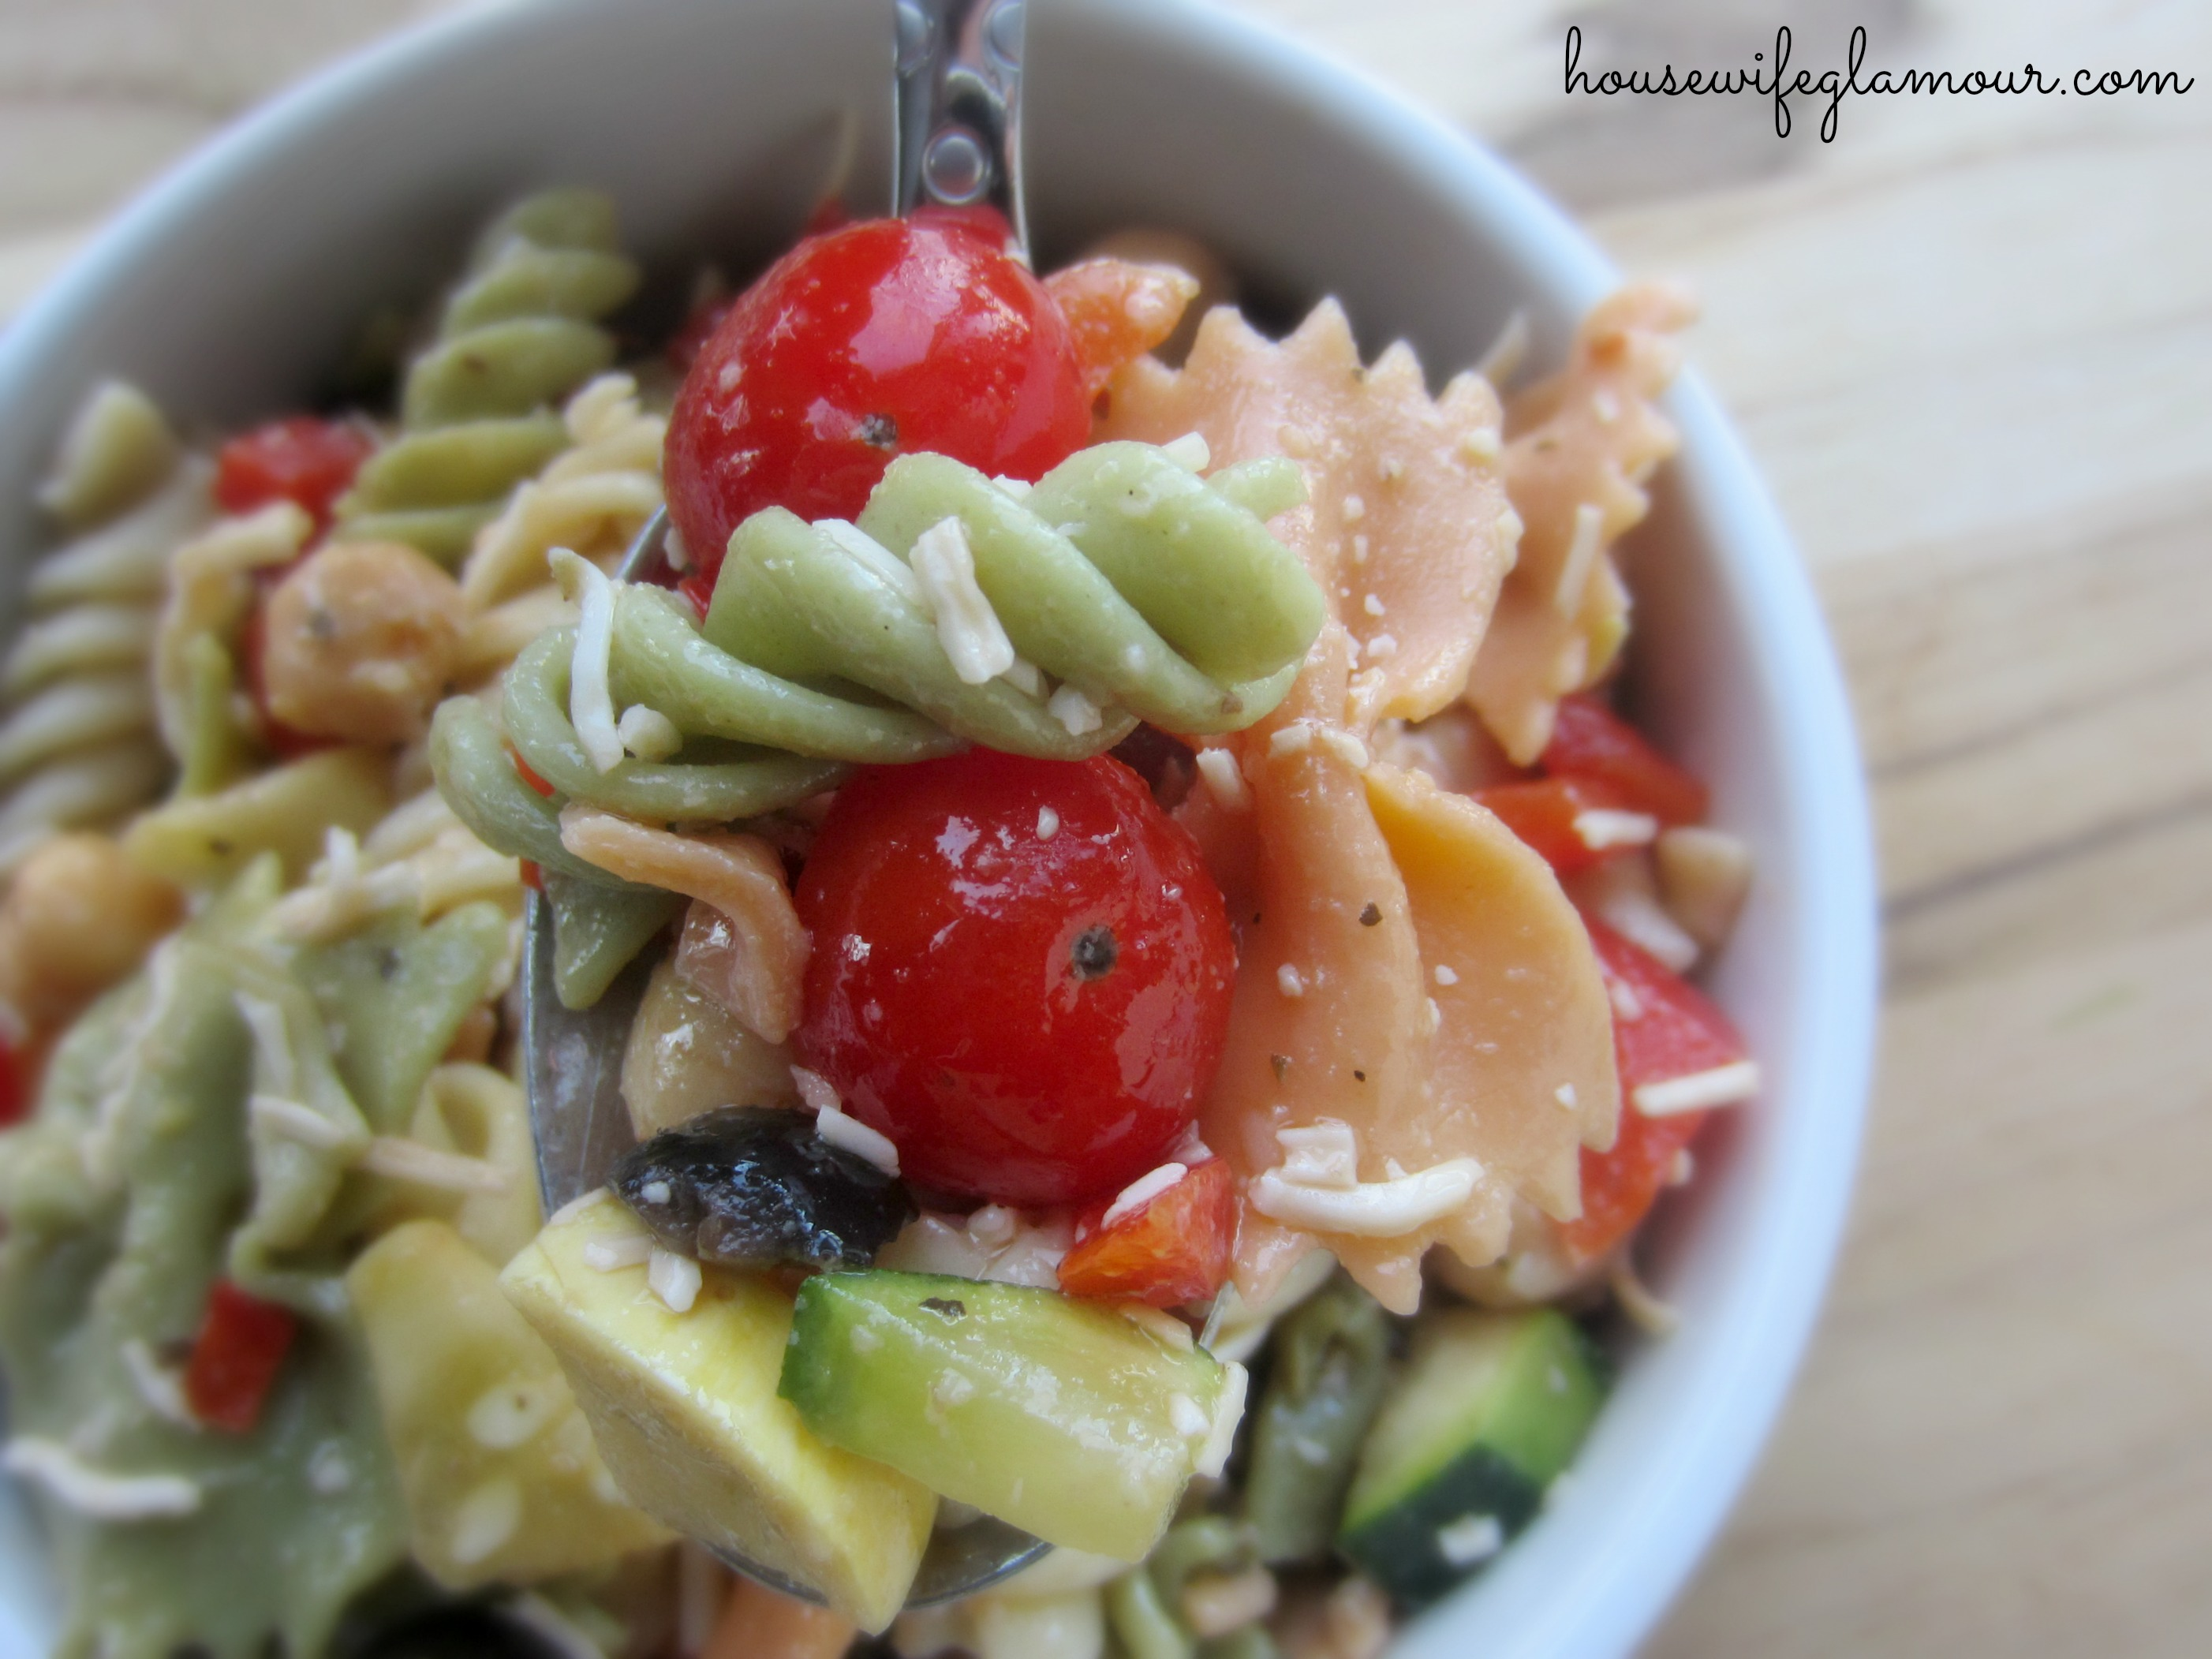 Healthy and light vegetable pasta salad